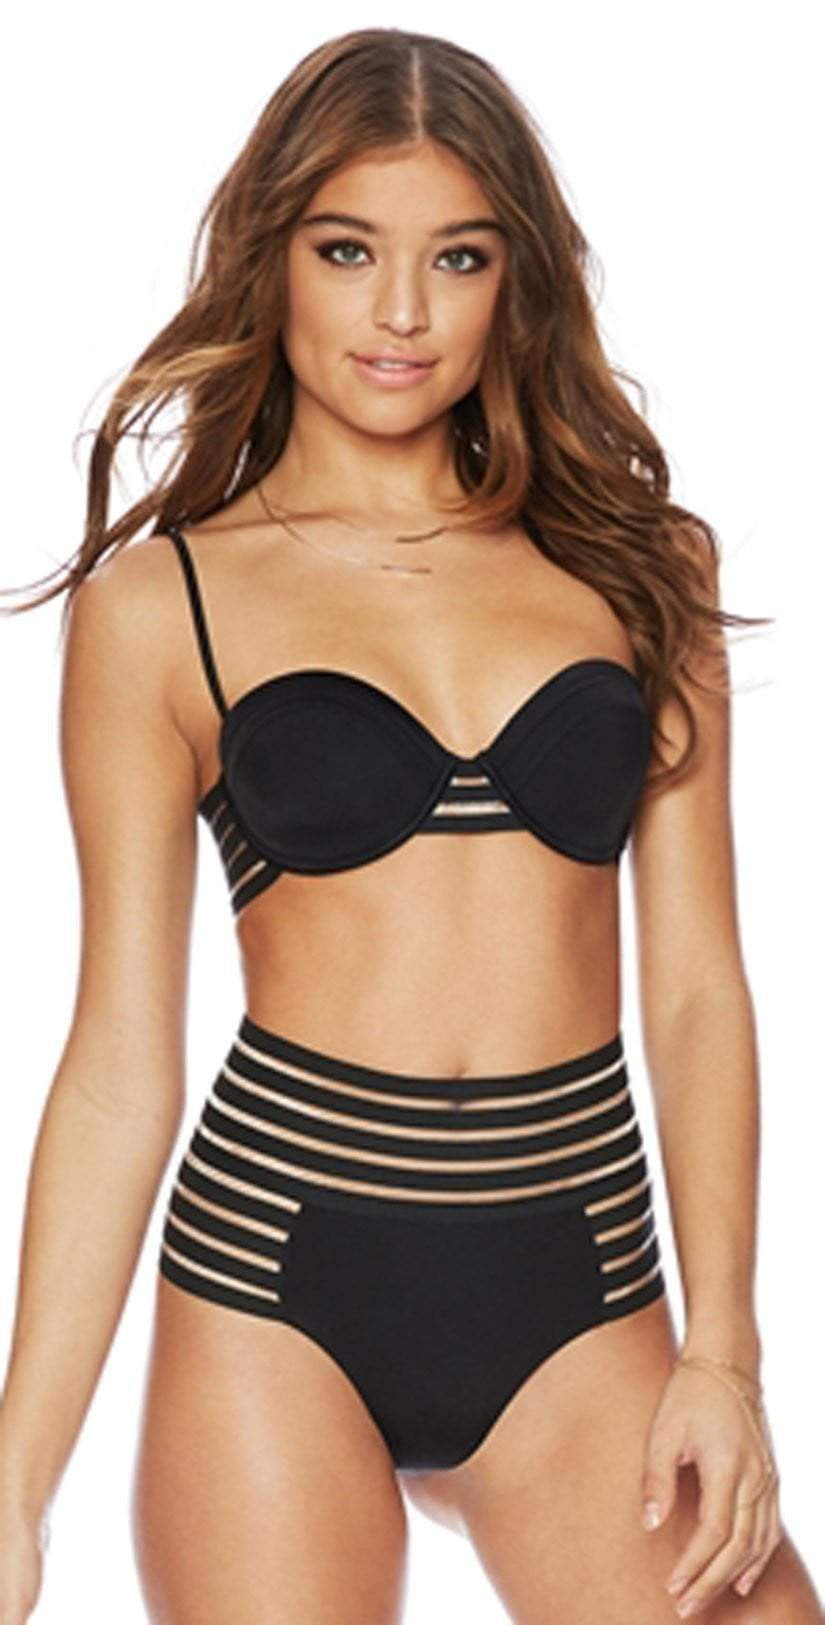 Beach Bunny Sheer Addiction Balconet Top B16125T6-BLCK